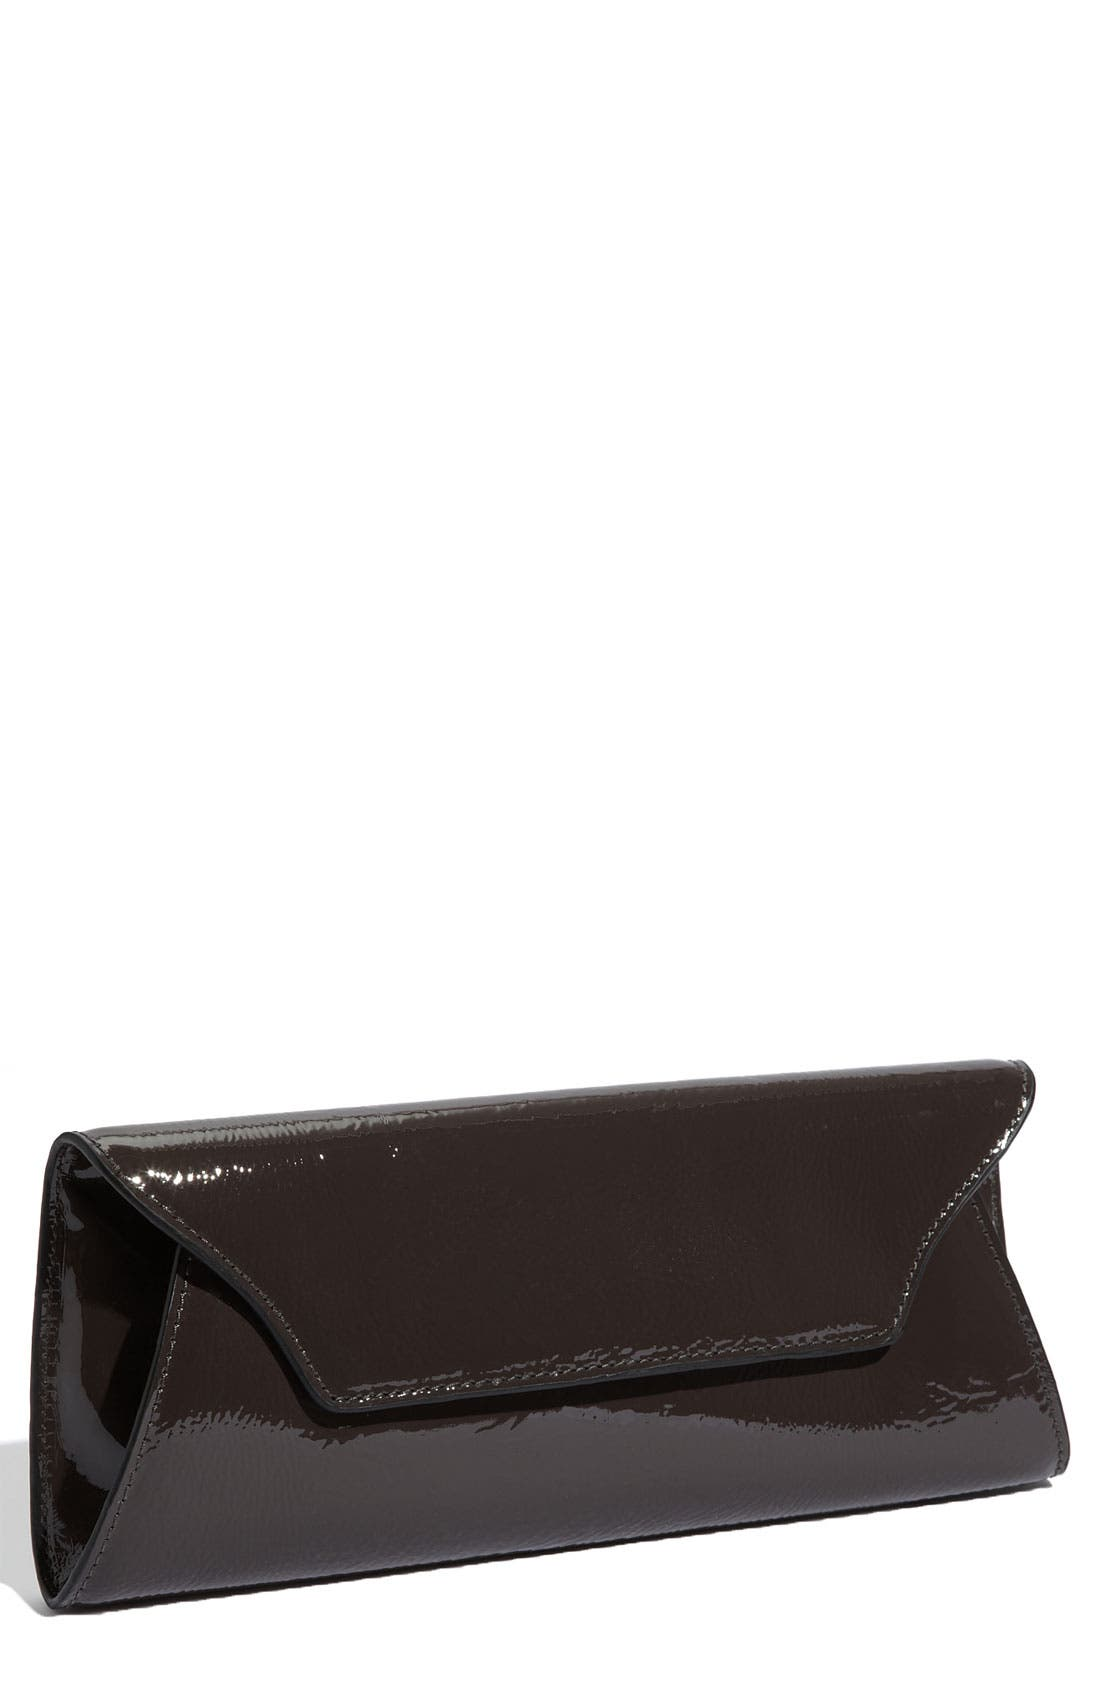 Main Image - Melie Bianco 'Riley' Faux Leather Envelope Clutch